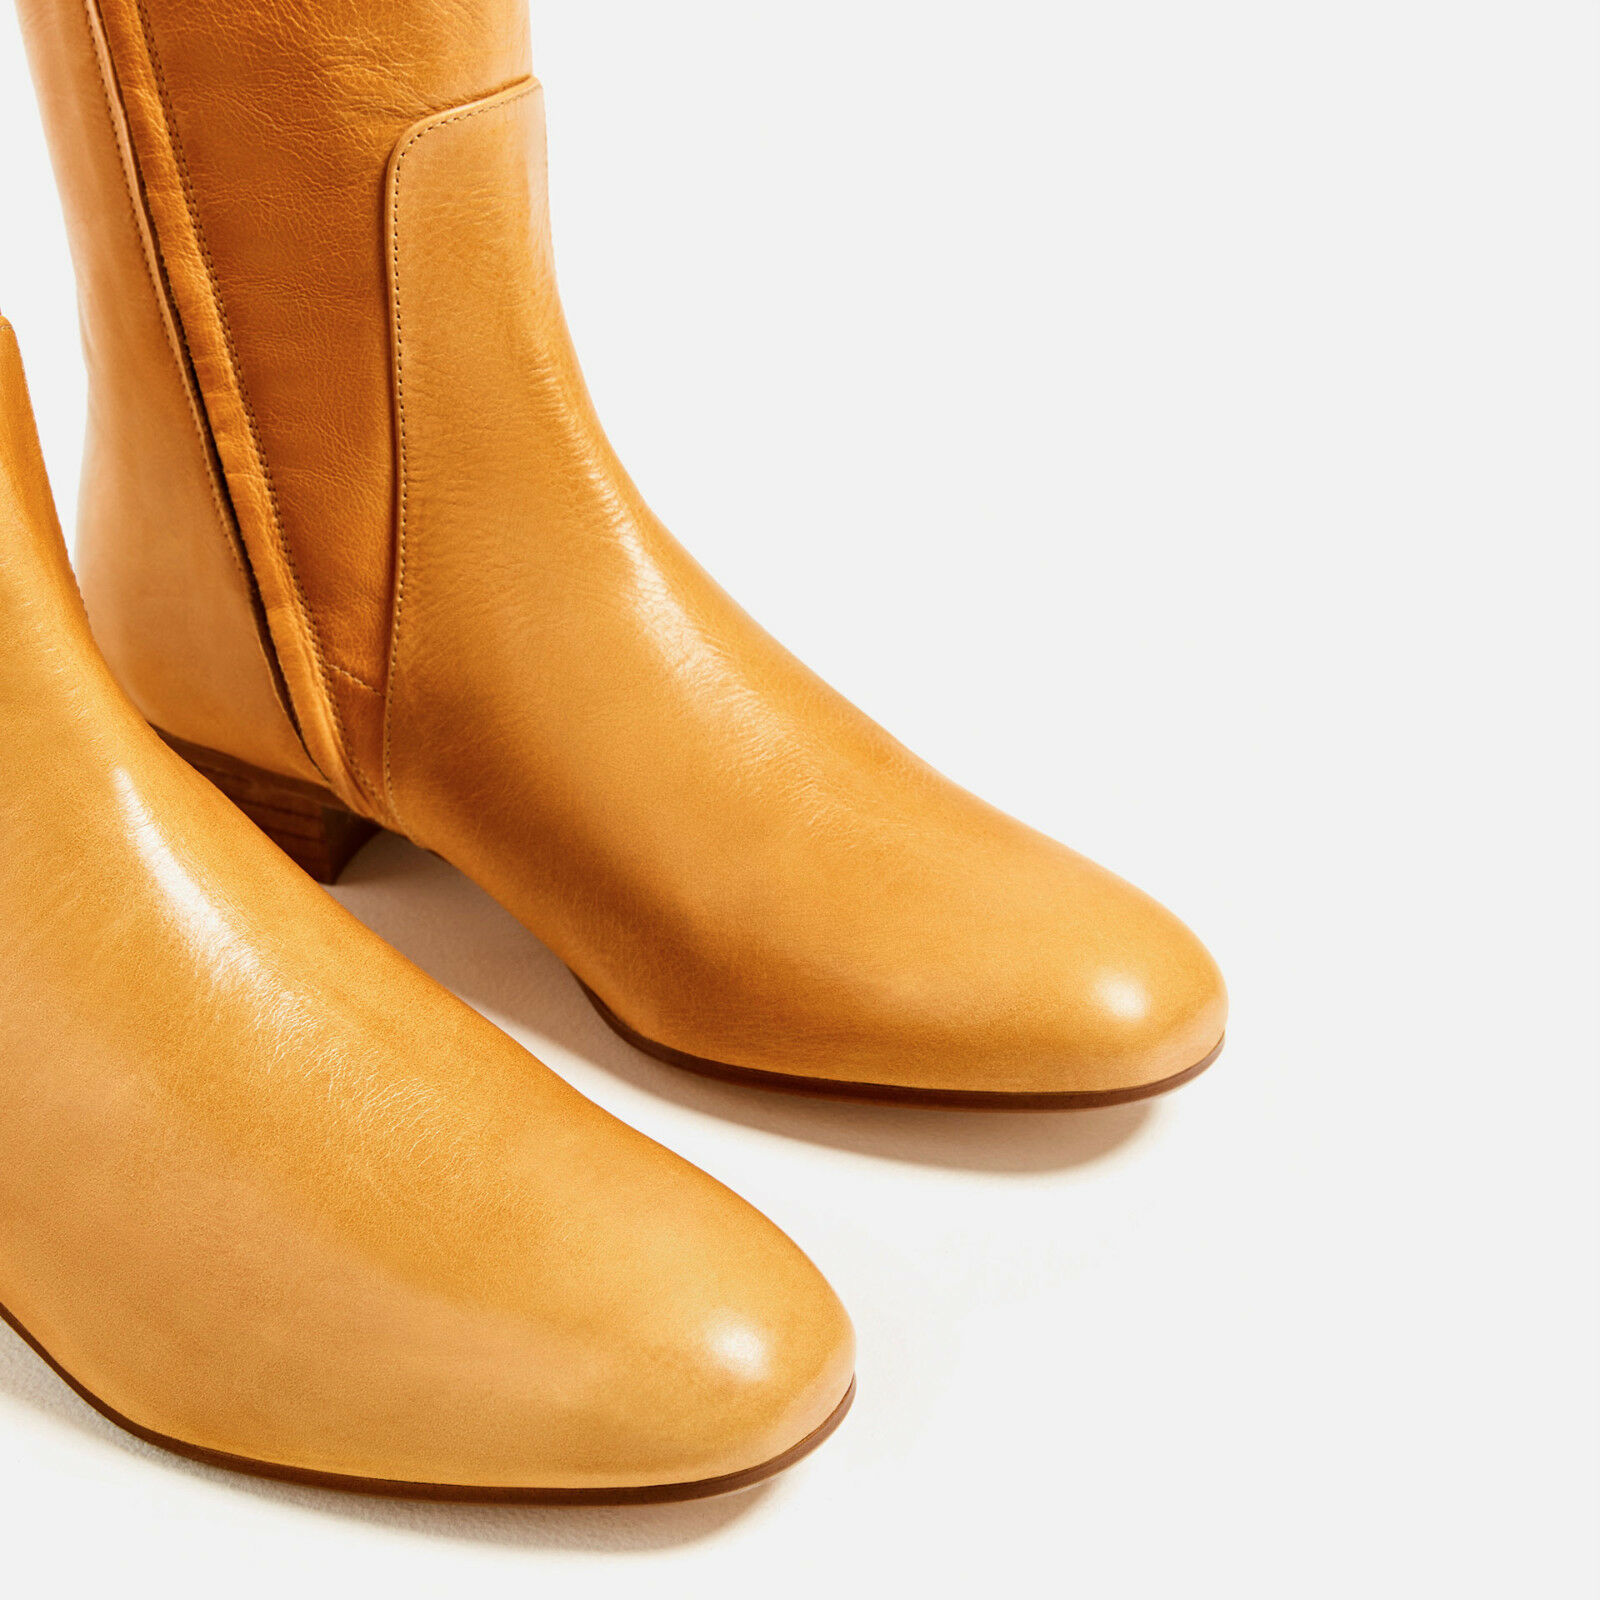 BNWT ZARA OVER-THE-KNEE FLAT LEATHER BOOTS COLLECTION 2016